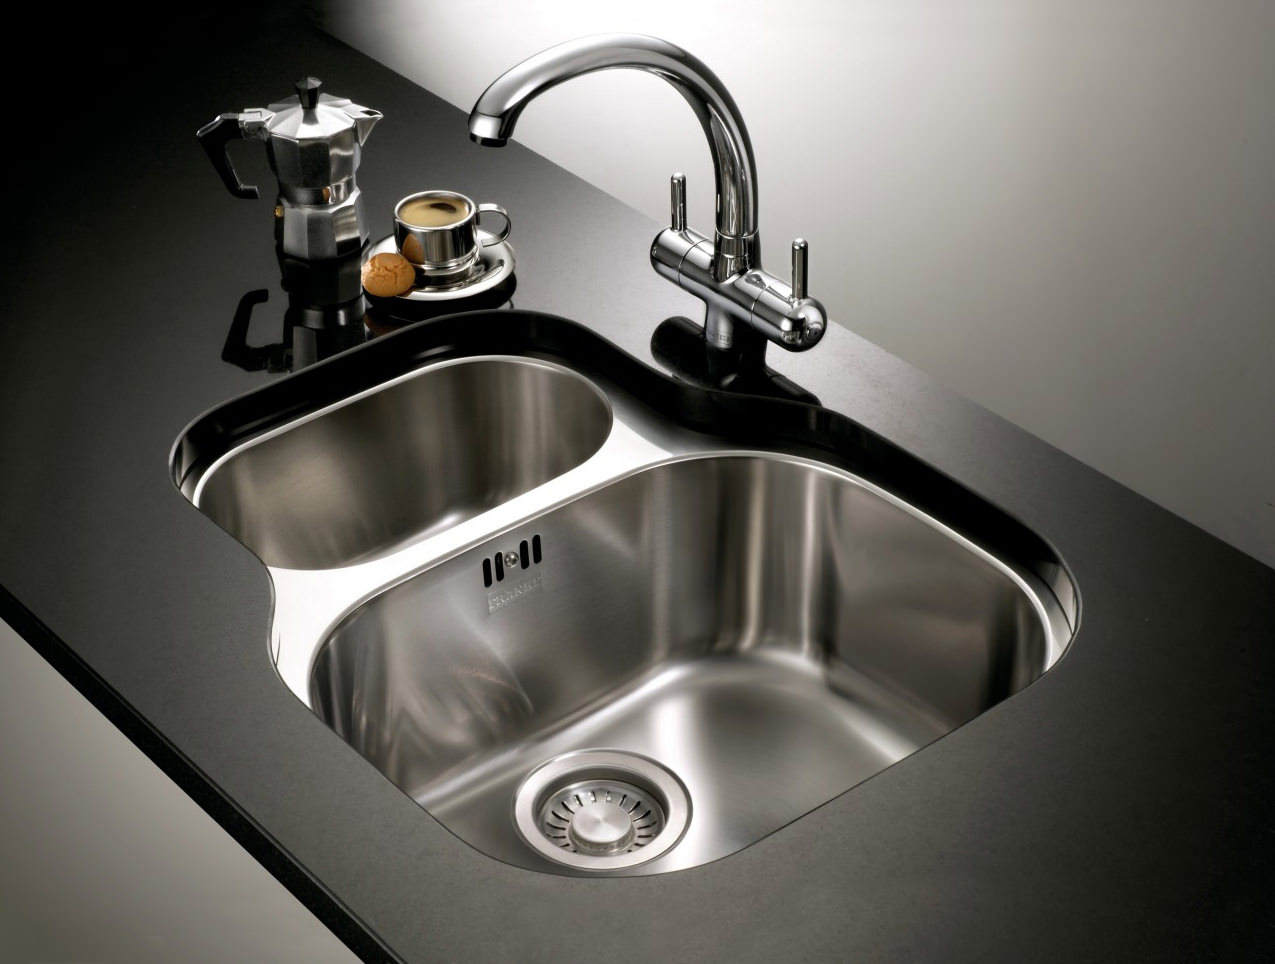 Franke Ss Sinks : ... Franke Compact Plus CPX 160P Stainless Steel 1.5 Bowl Undermount Sink